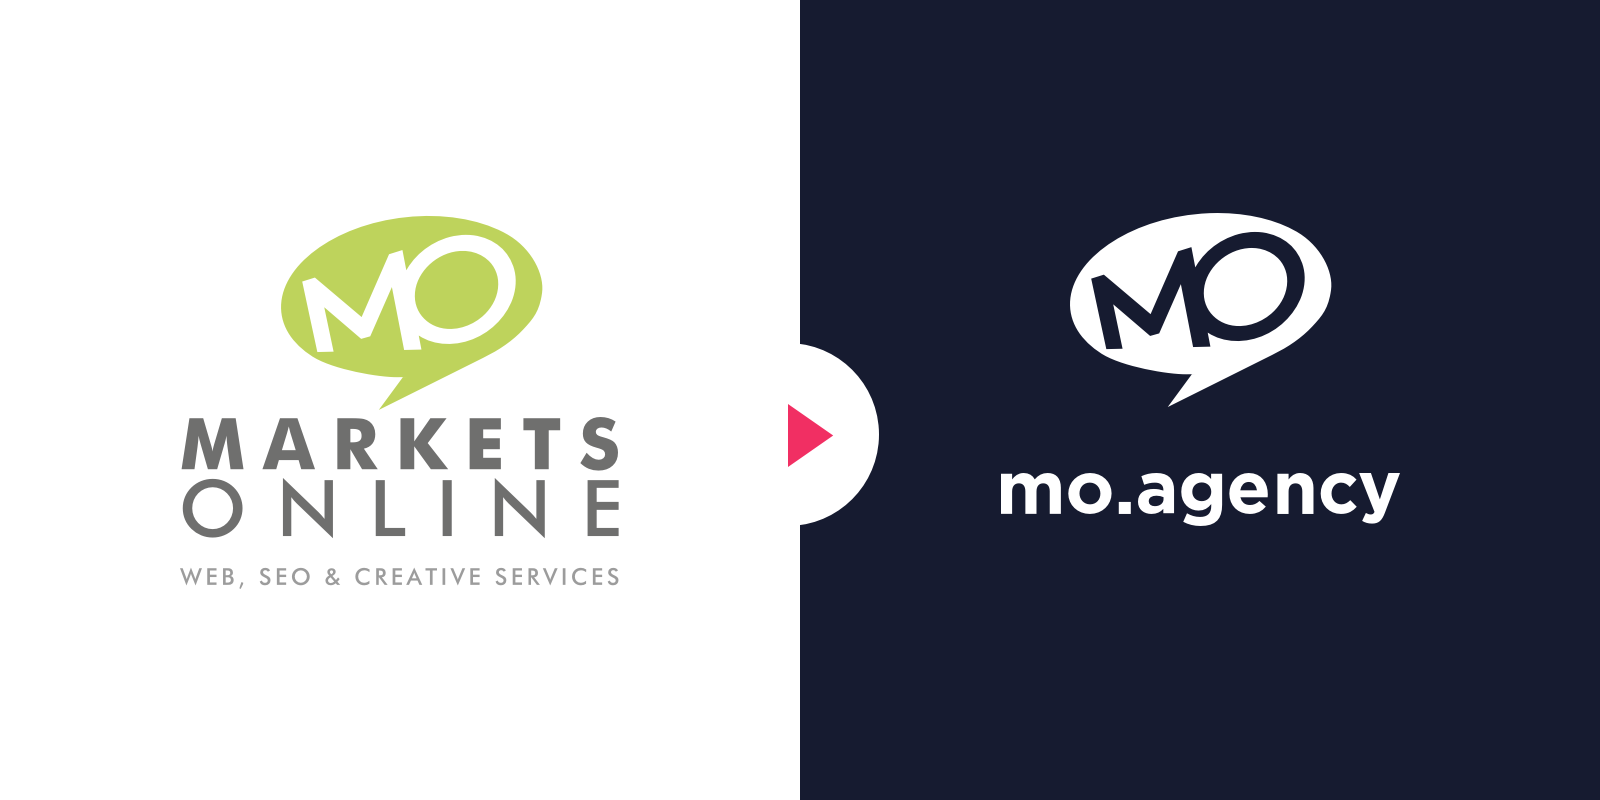 Markets Online, the biggest little agency, rebrands to MO